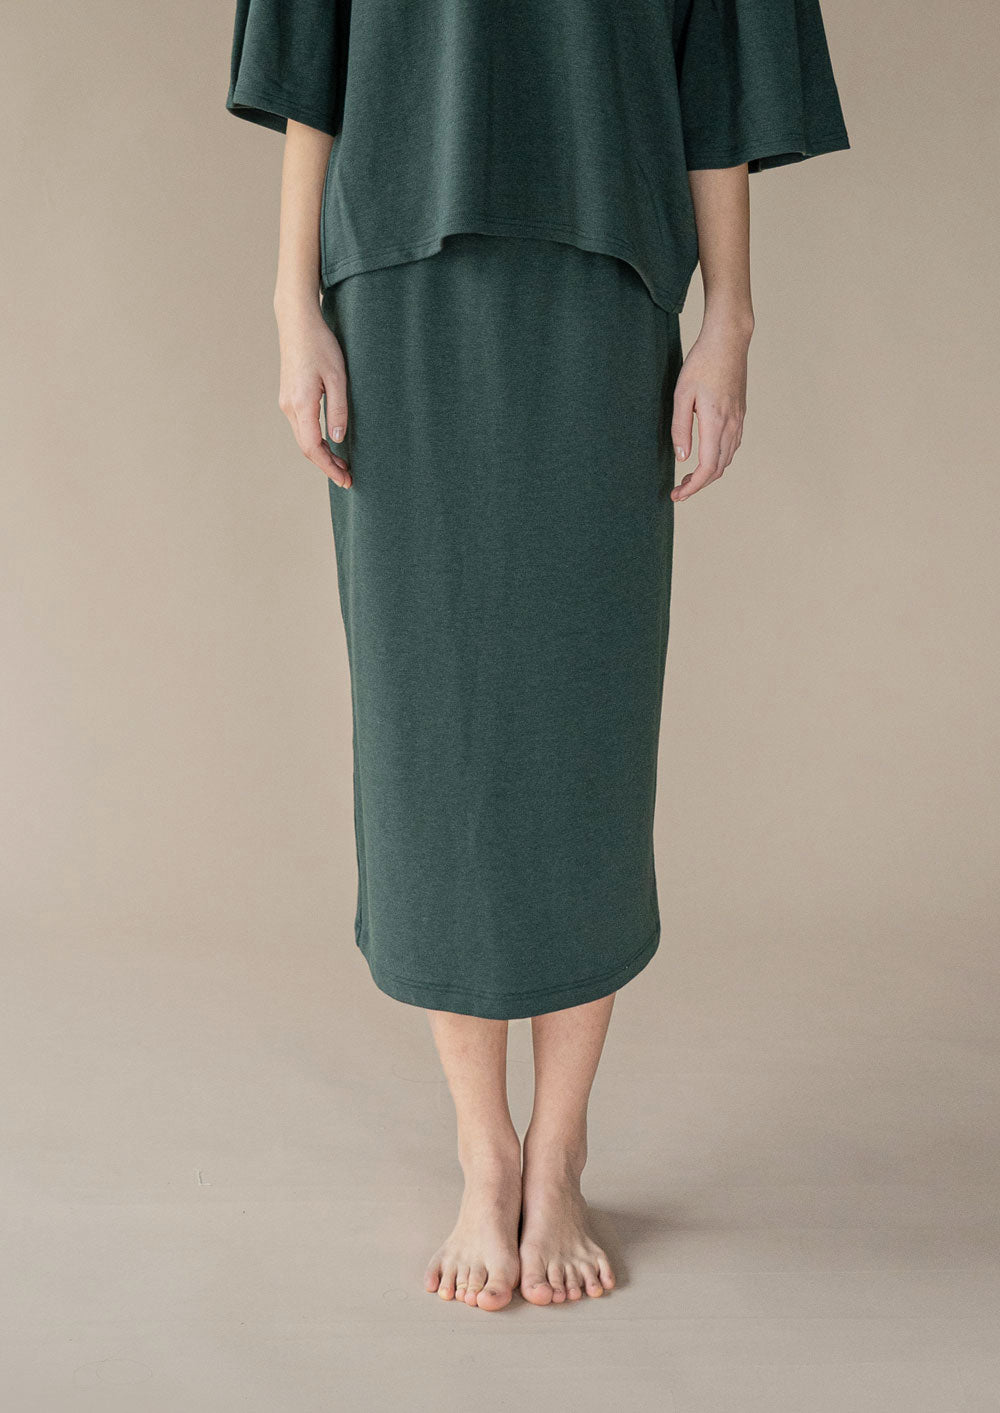 Discourse Skirt ¦ Hunter Green